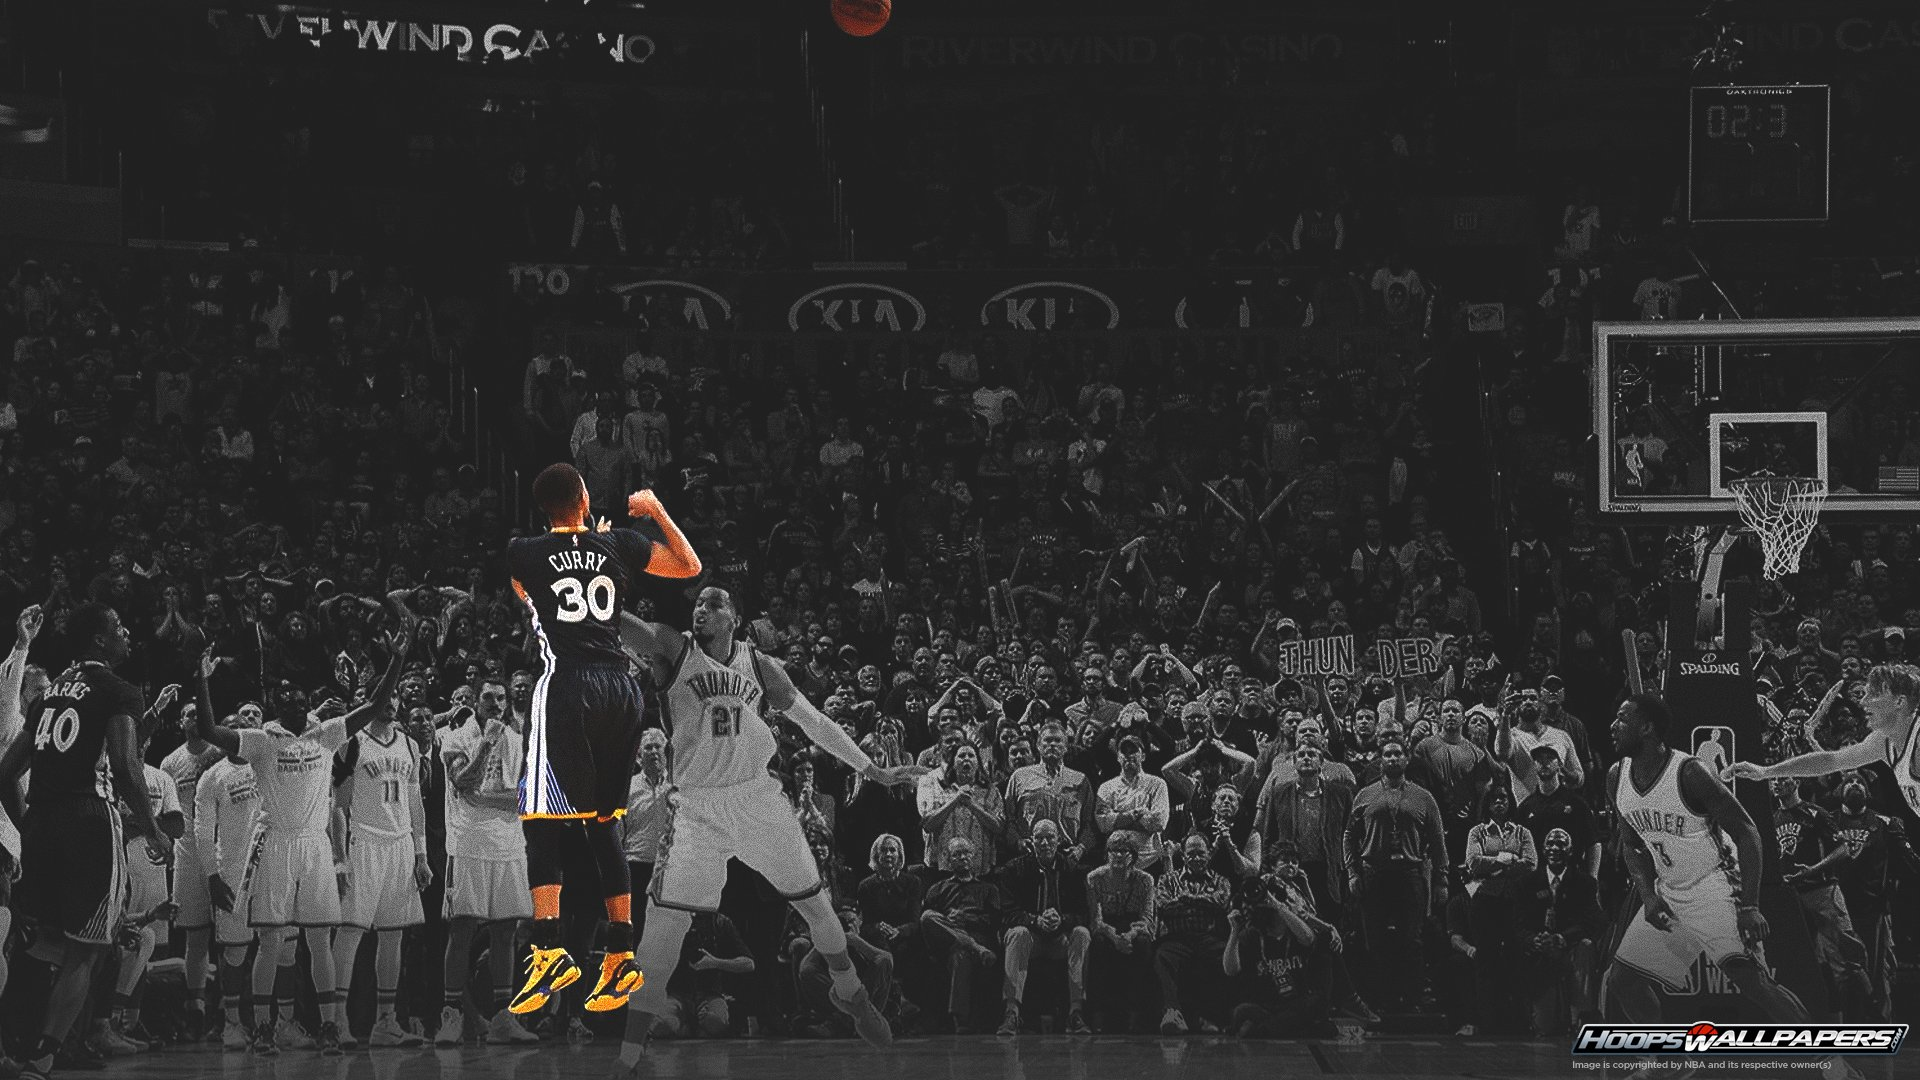 Stephen Curry Wallpaper HD 2016 - WallpaperSafari